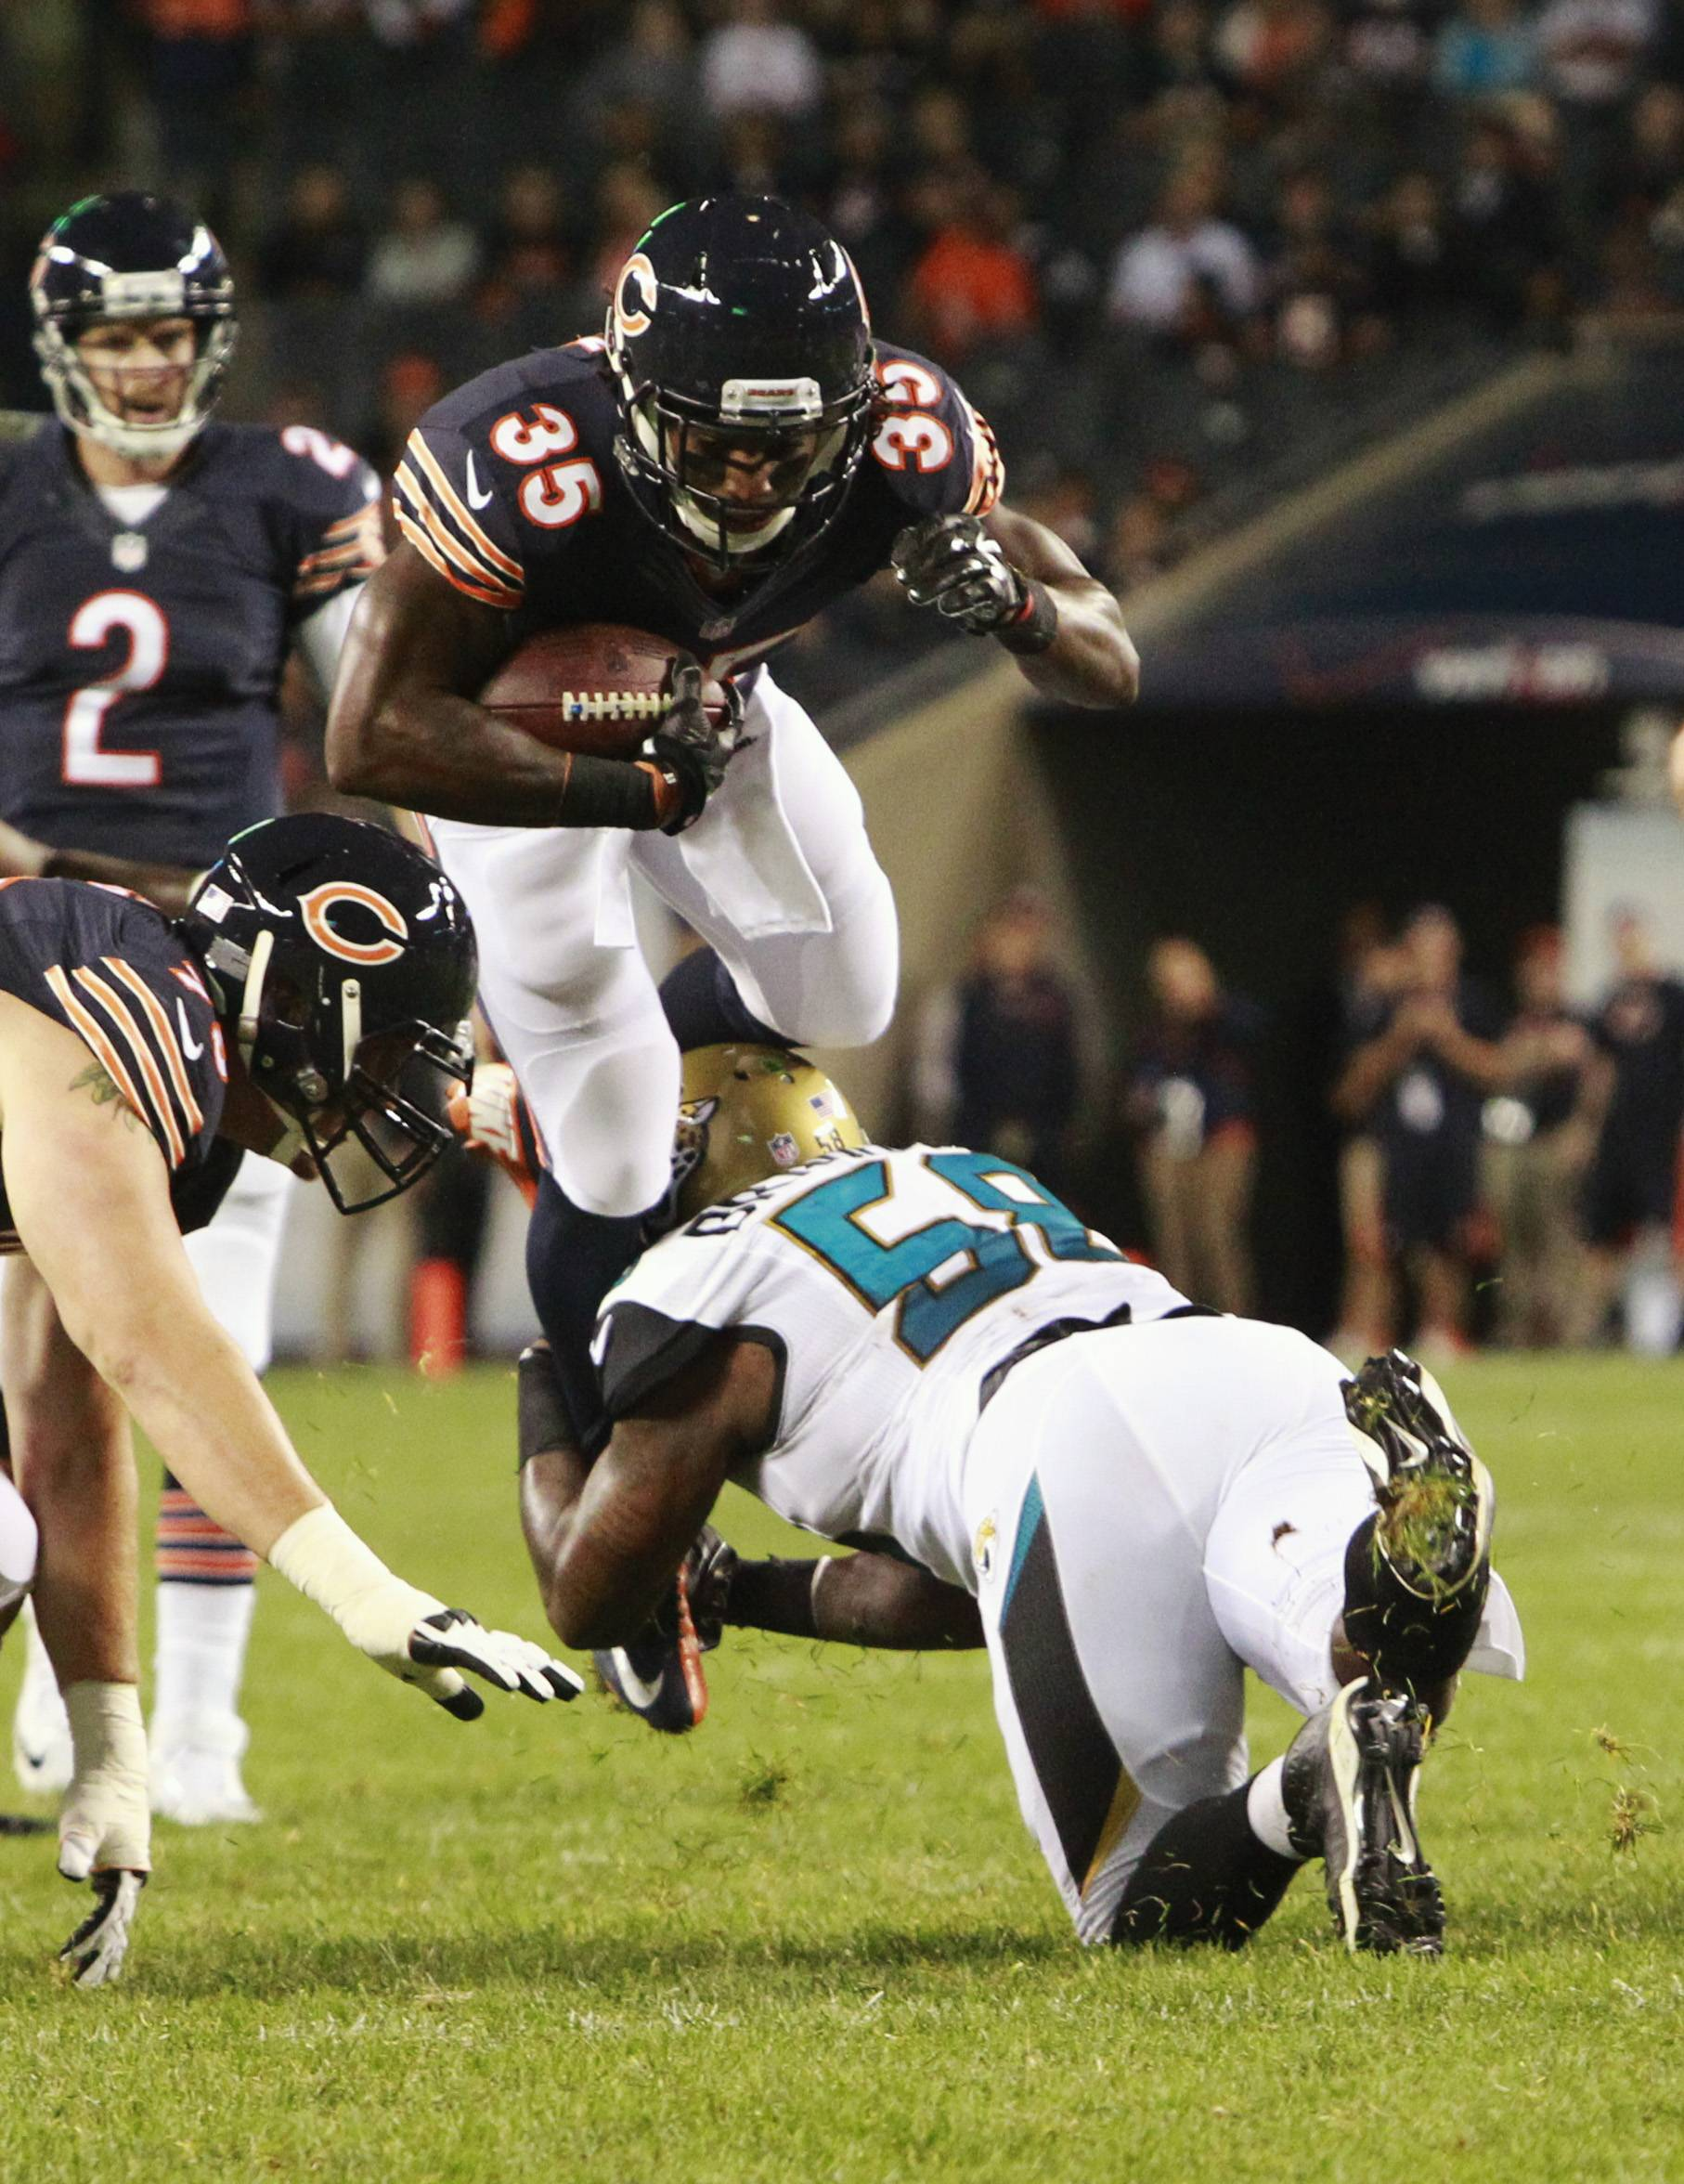 Bears running back Senorise Perry (35) tries to leap over Jacksonville Jaguars defensive end Allen Bradford (58) during the second half of the preseason football game in Chicago Thursday.